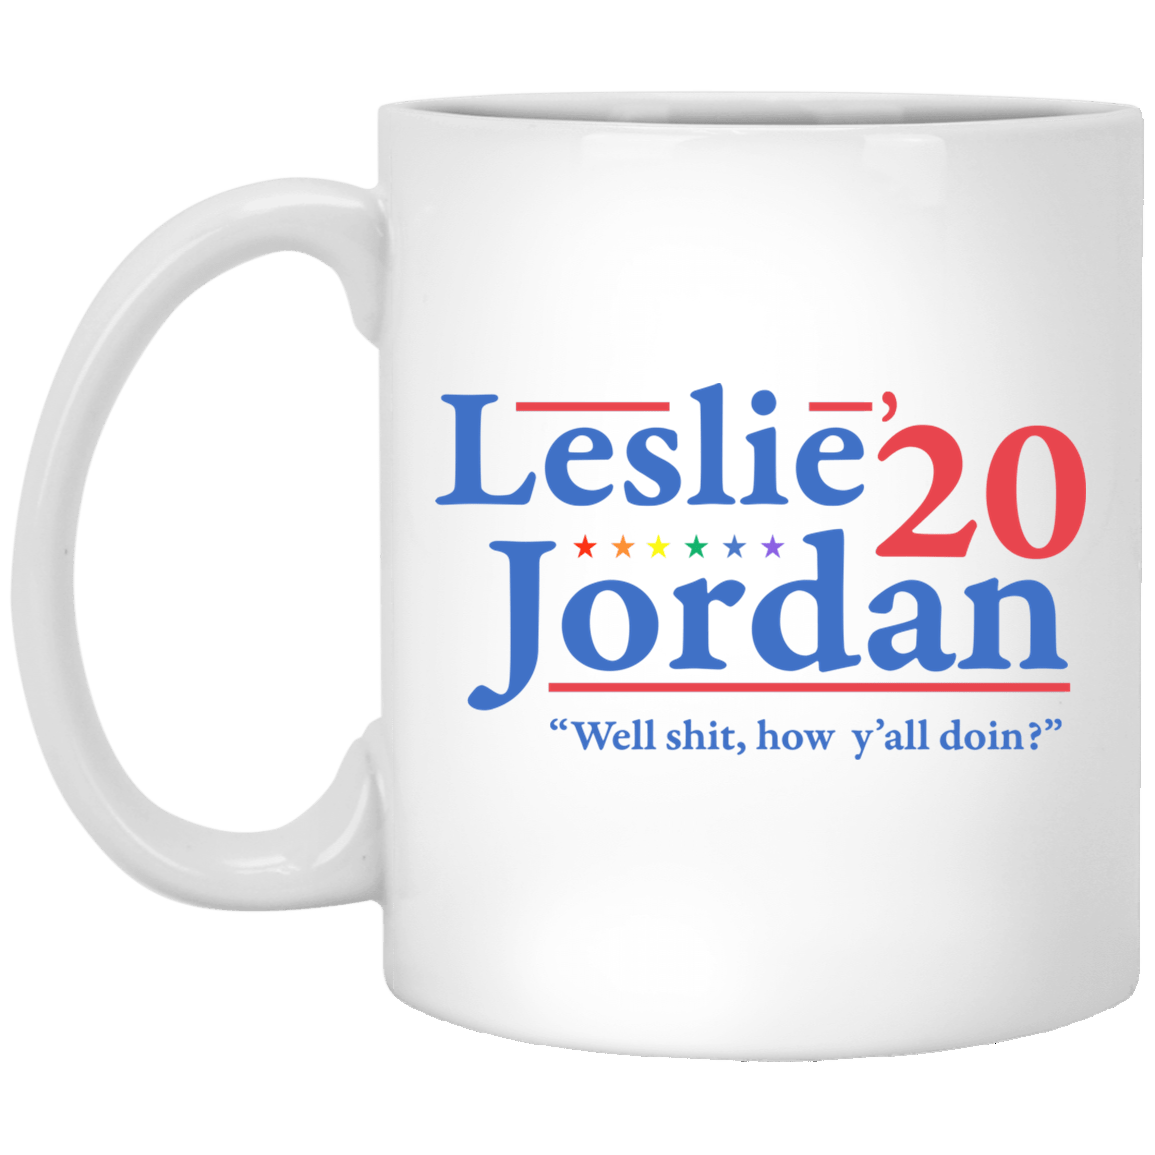 Leslie Jordan 2020 Well Shit How Y'all Doin Mug 1005-9786-88282898-47417 - Tee Ript